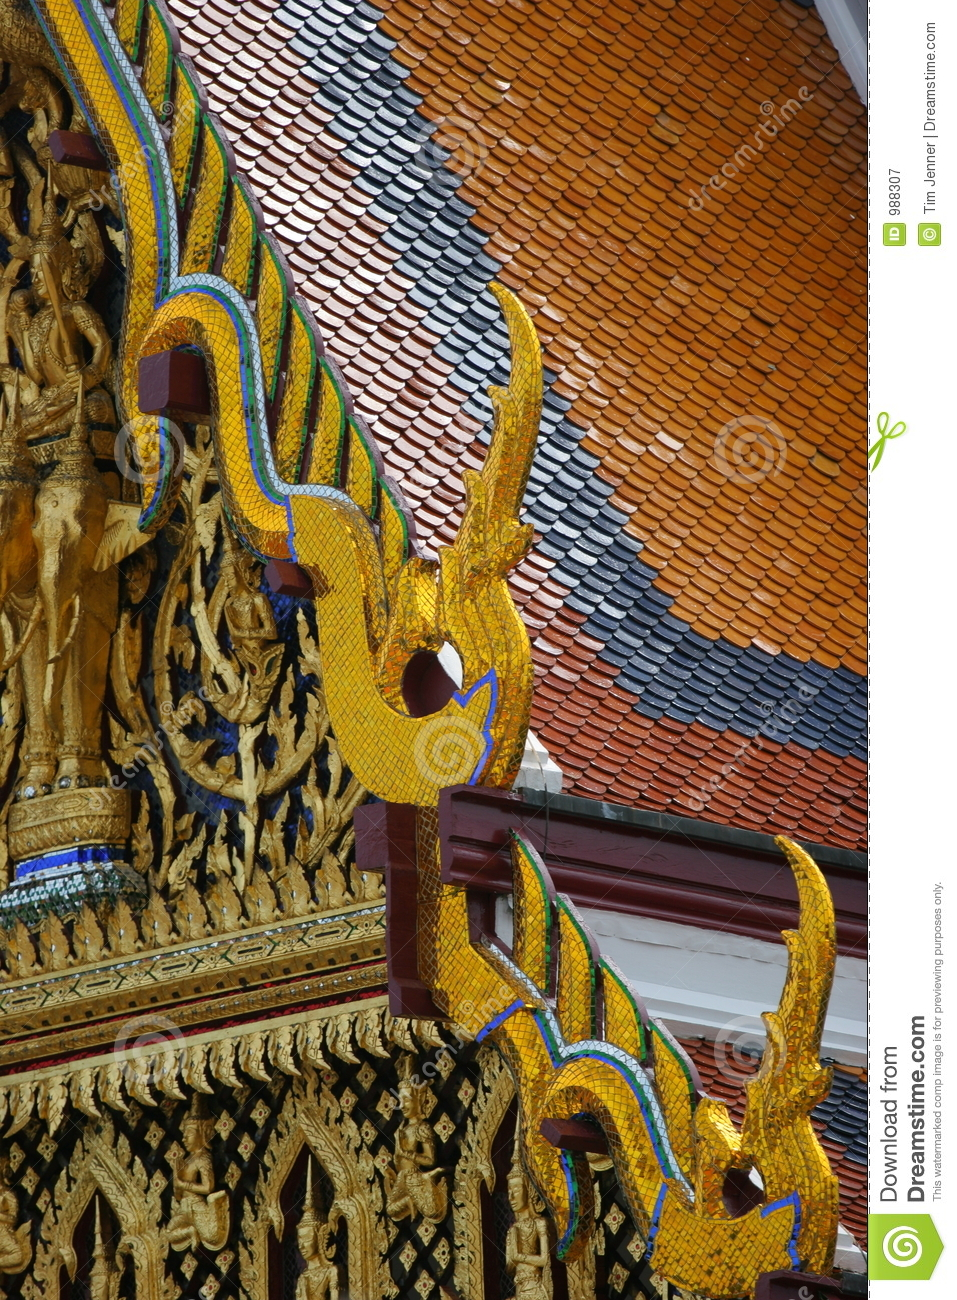 Roof det thai tempelet